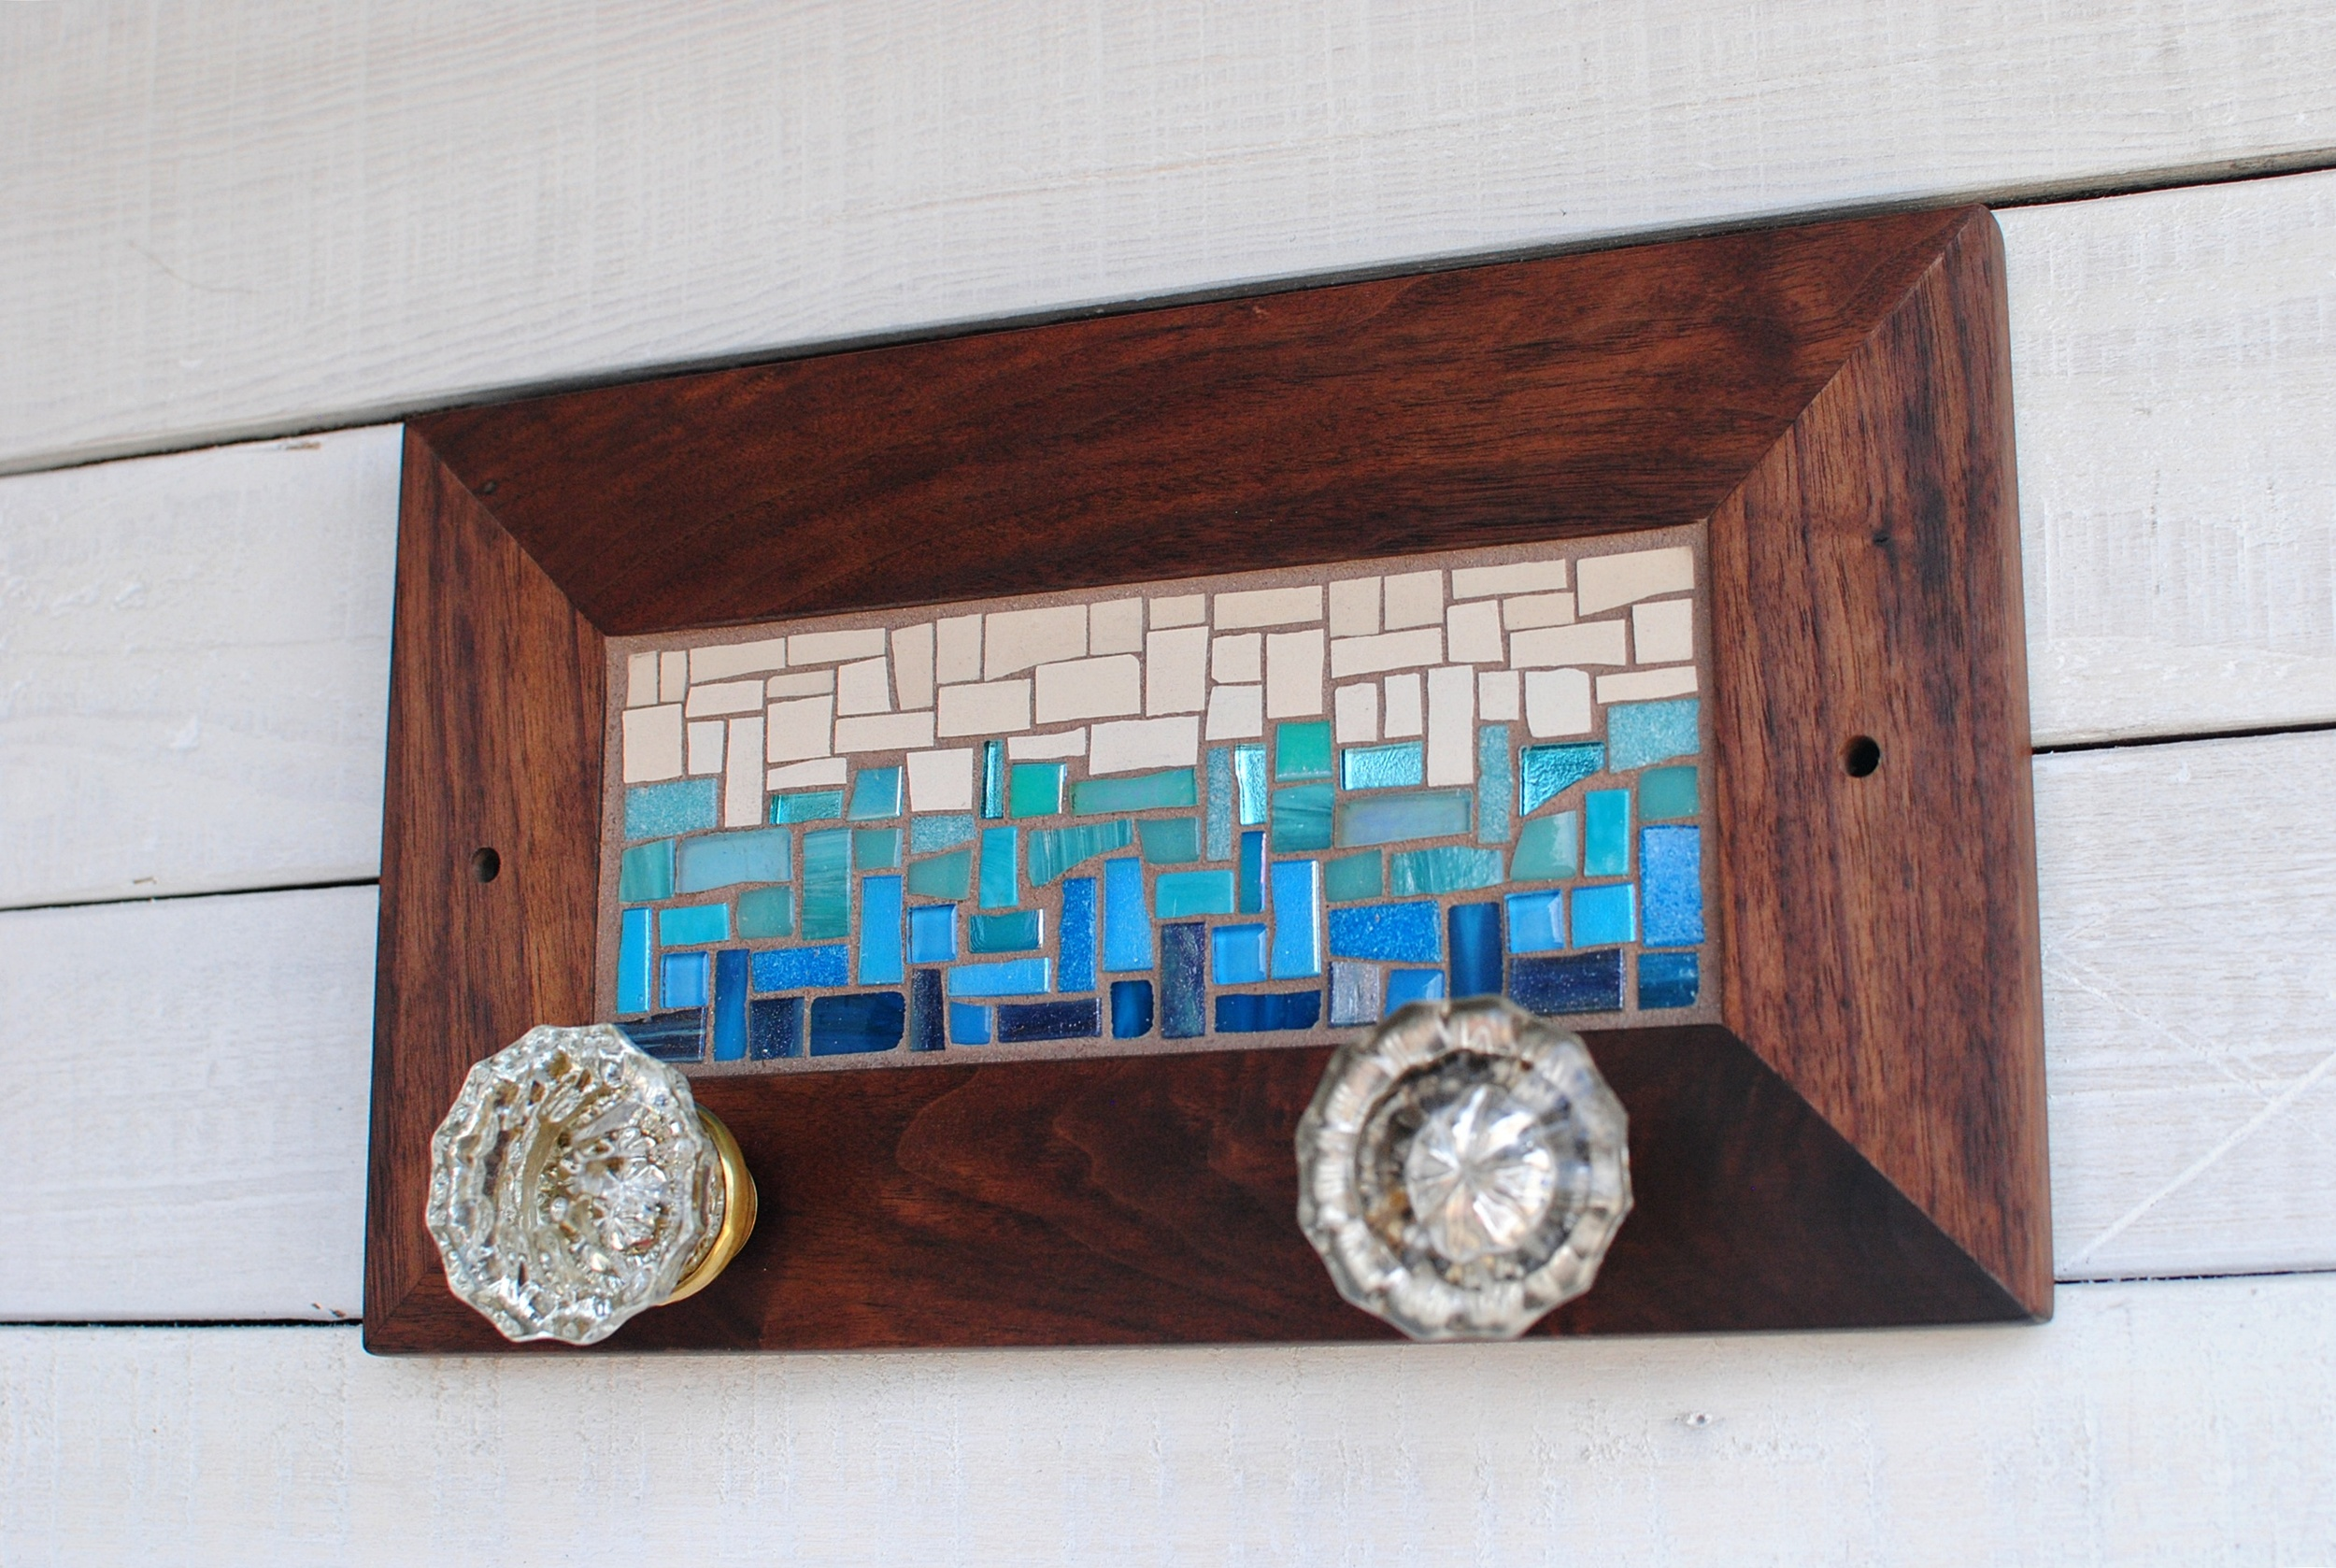 Custom mosaic coat rack in blue and tan with vintage door knobs for hooks